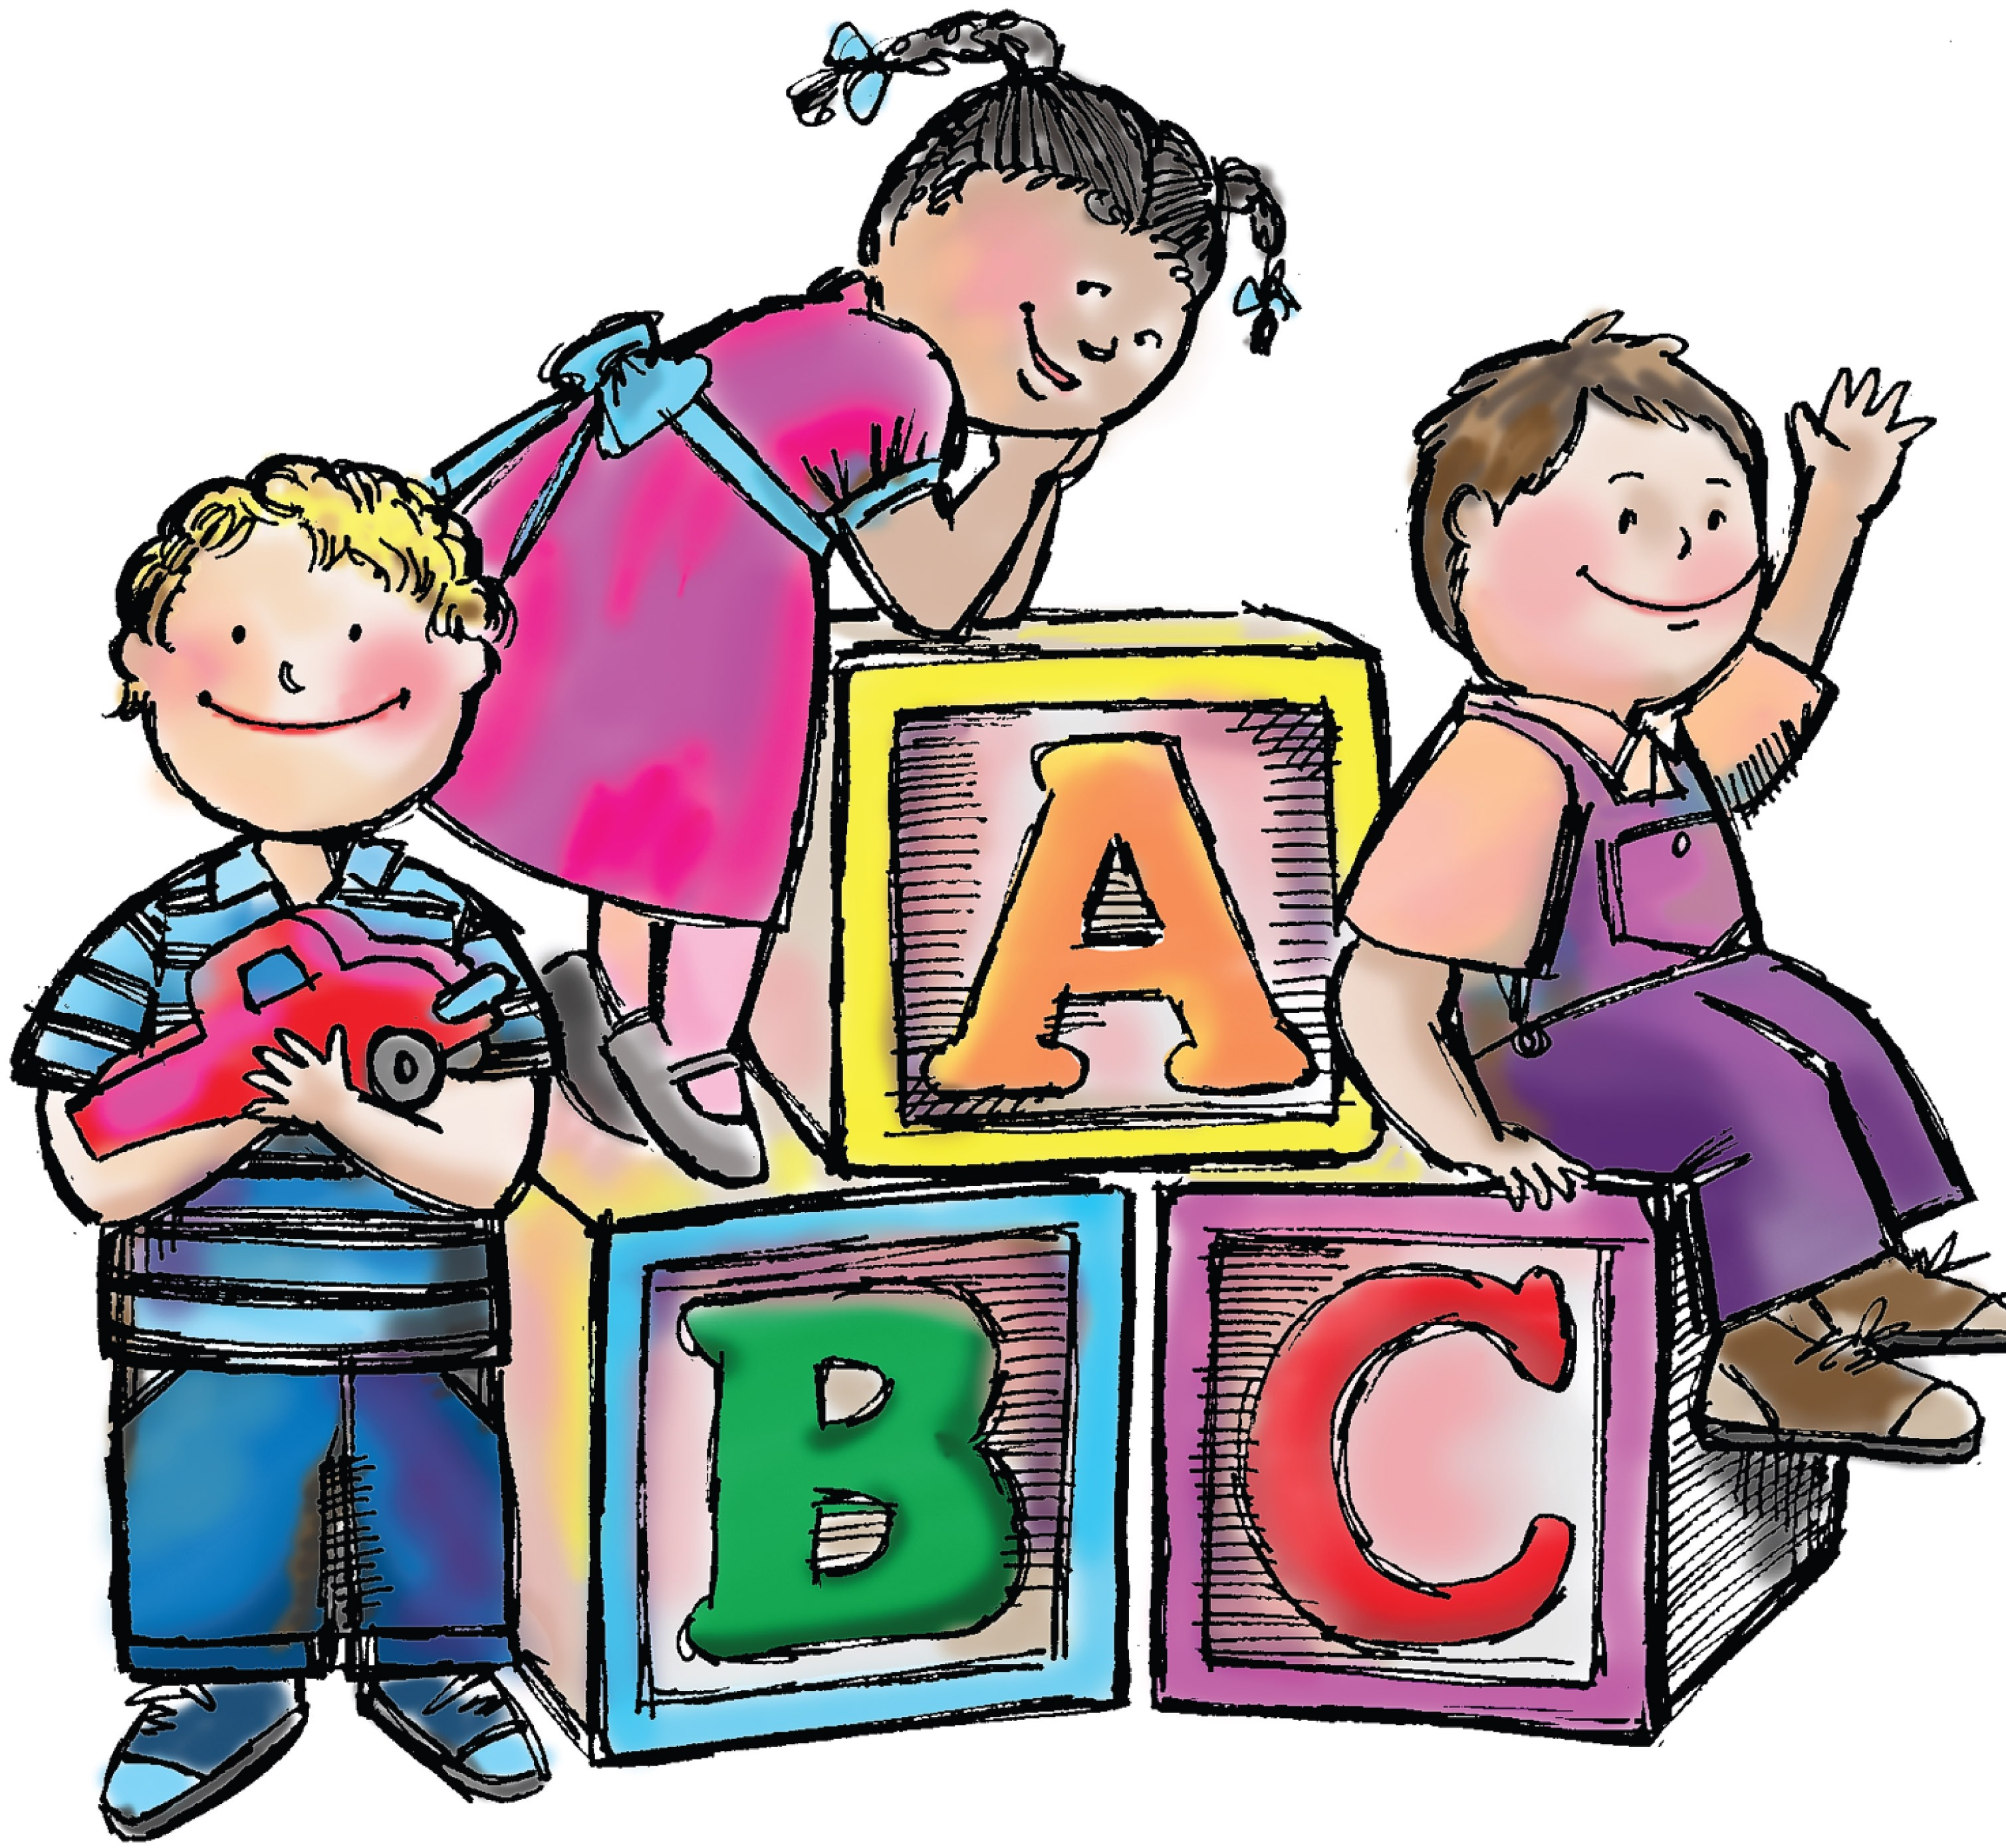 Sharing clipart understanding person. Free church nursery cliparts